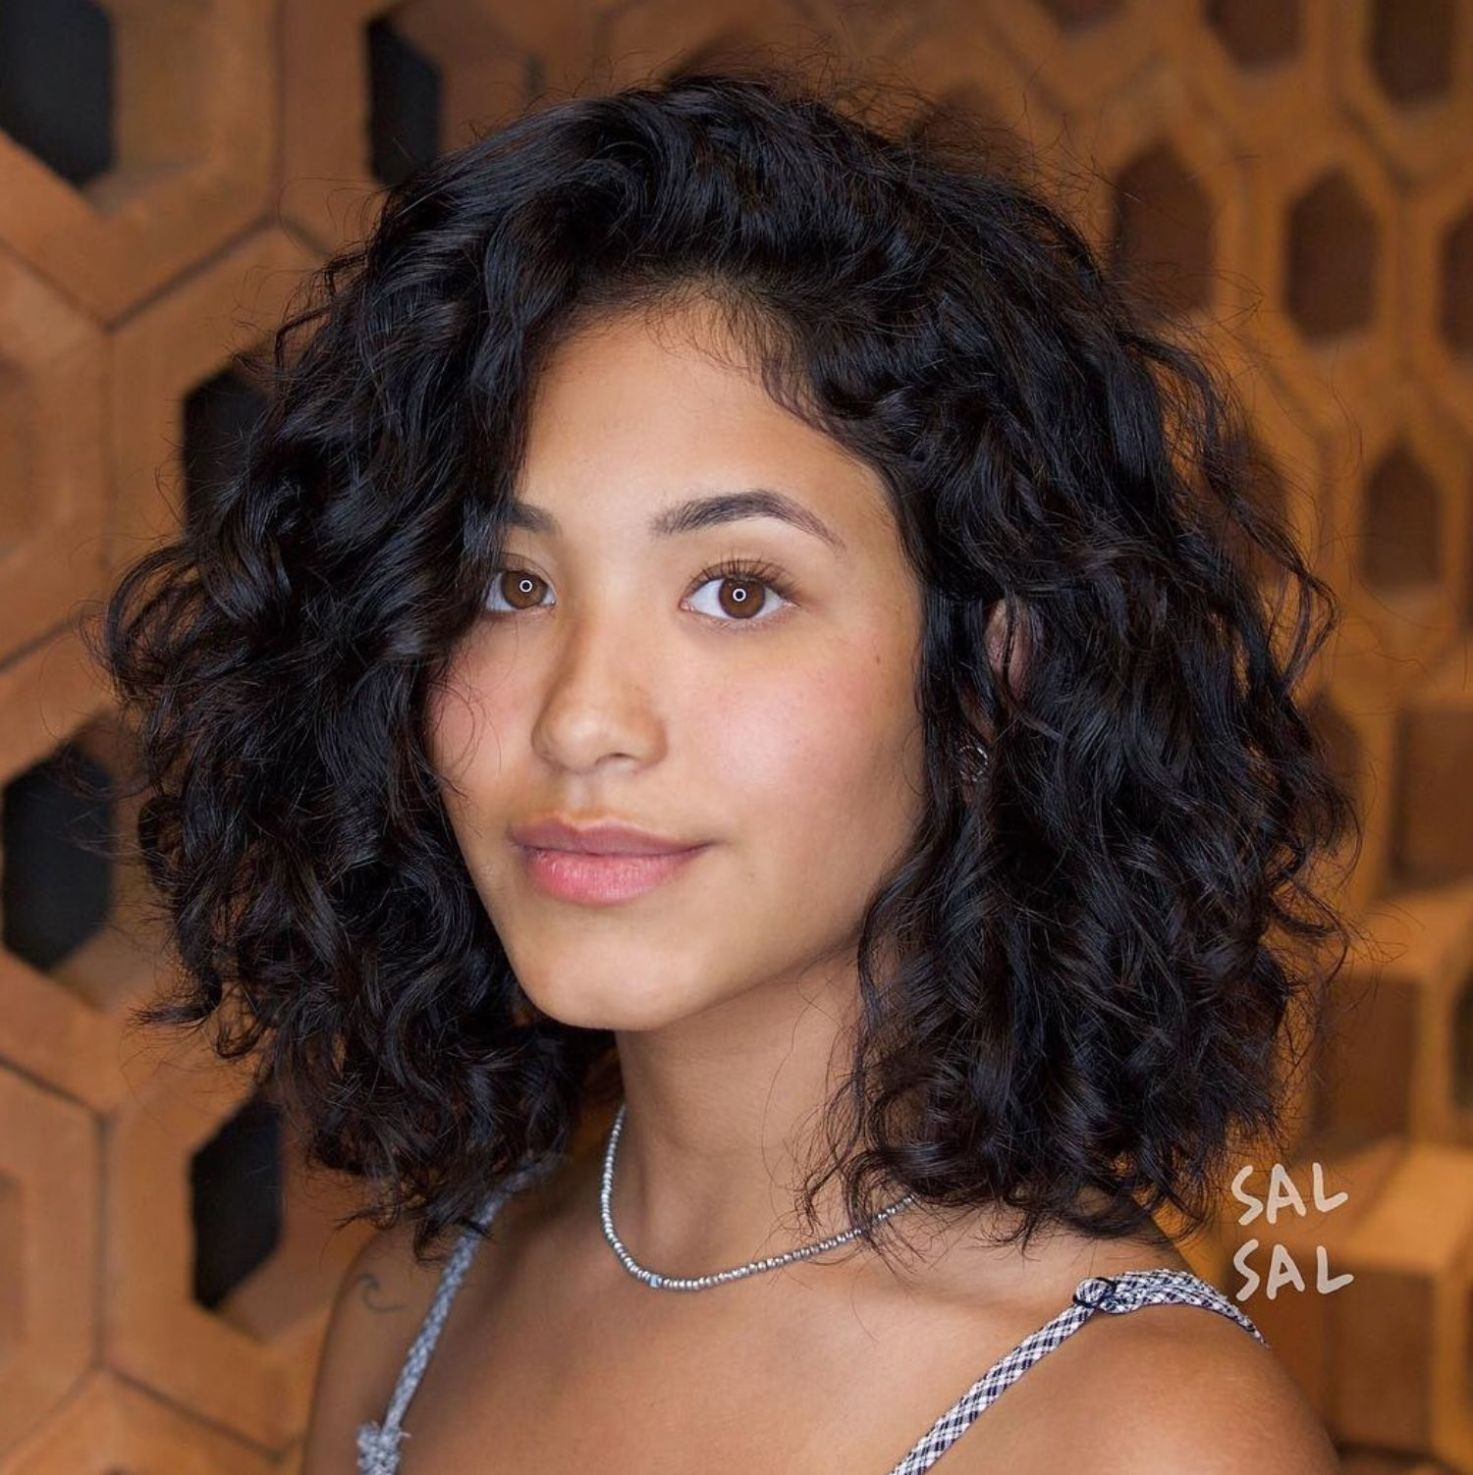 Natural Curly Combover Lob in 2020 | Curly hair styles naturally, Curly  hair styles, Short curly haircuts